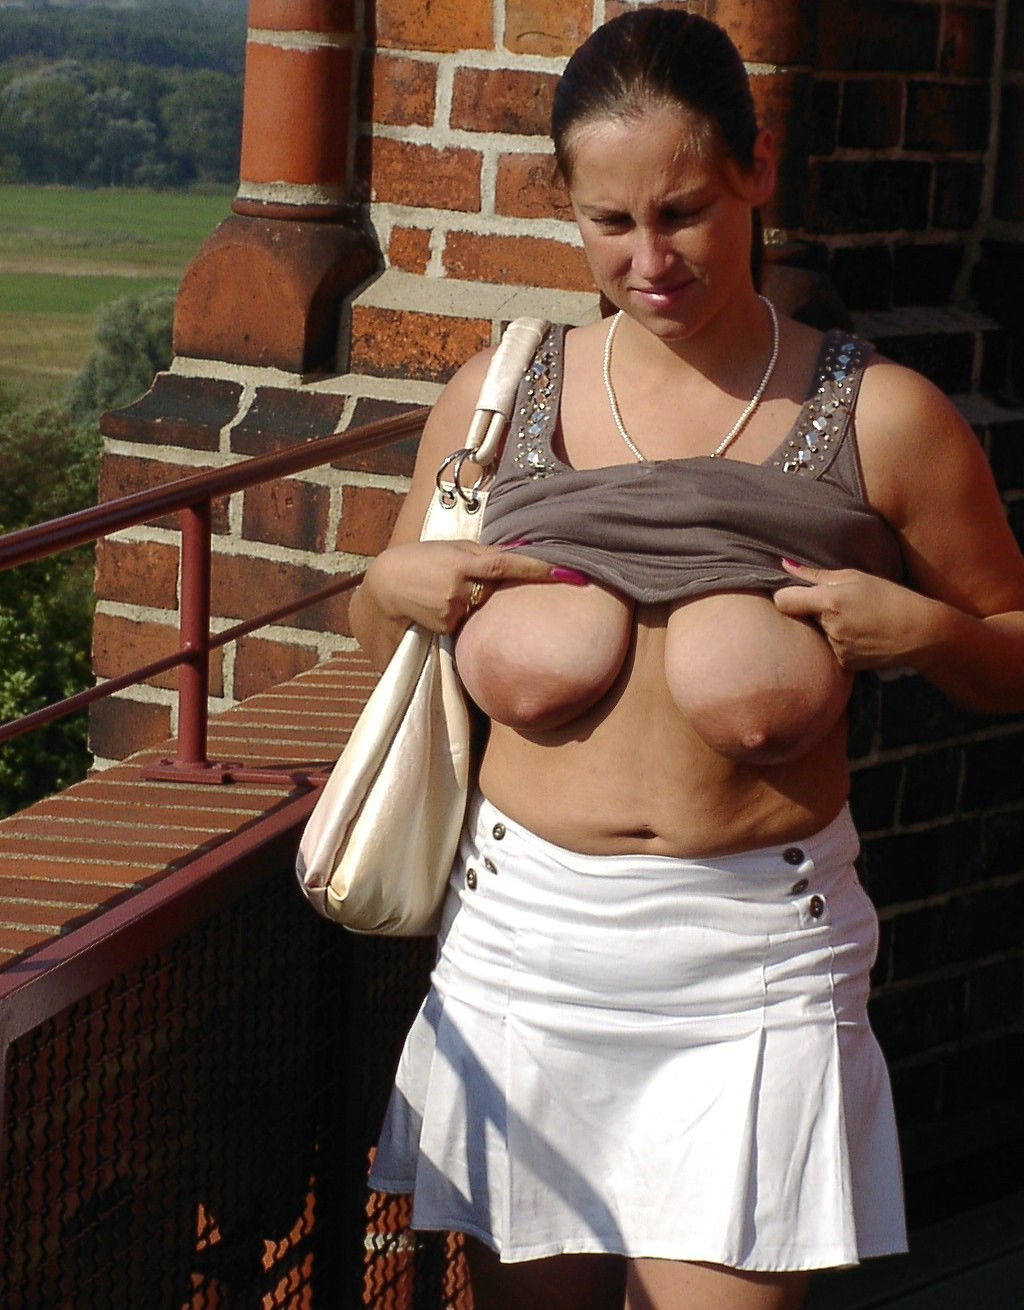 Gallery Of A Russian Wife With Big, Saggy Tits -8141